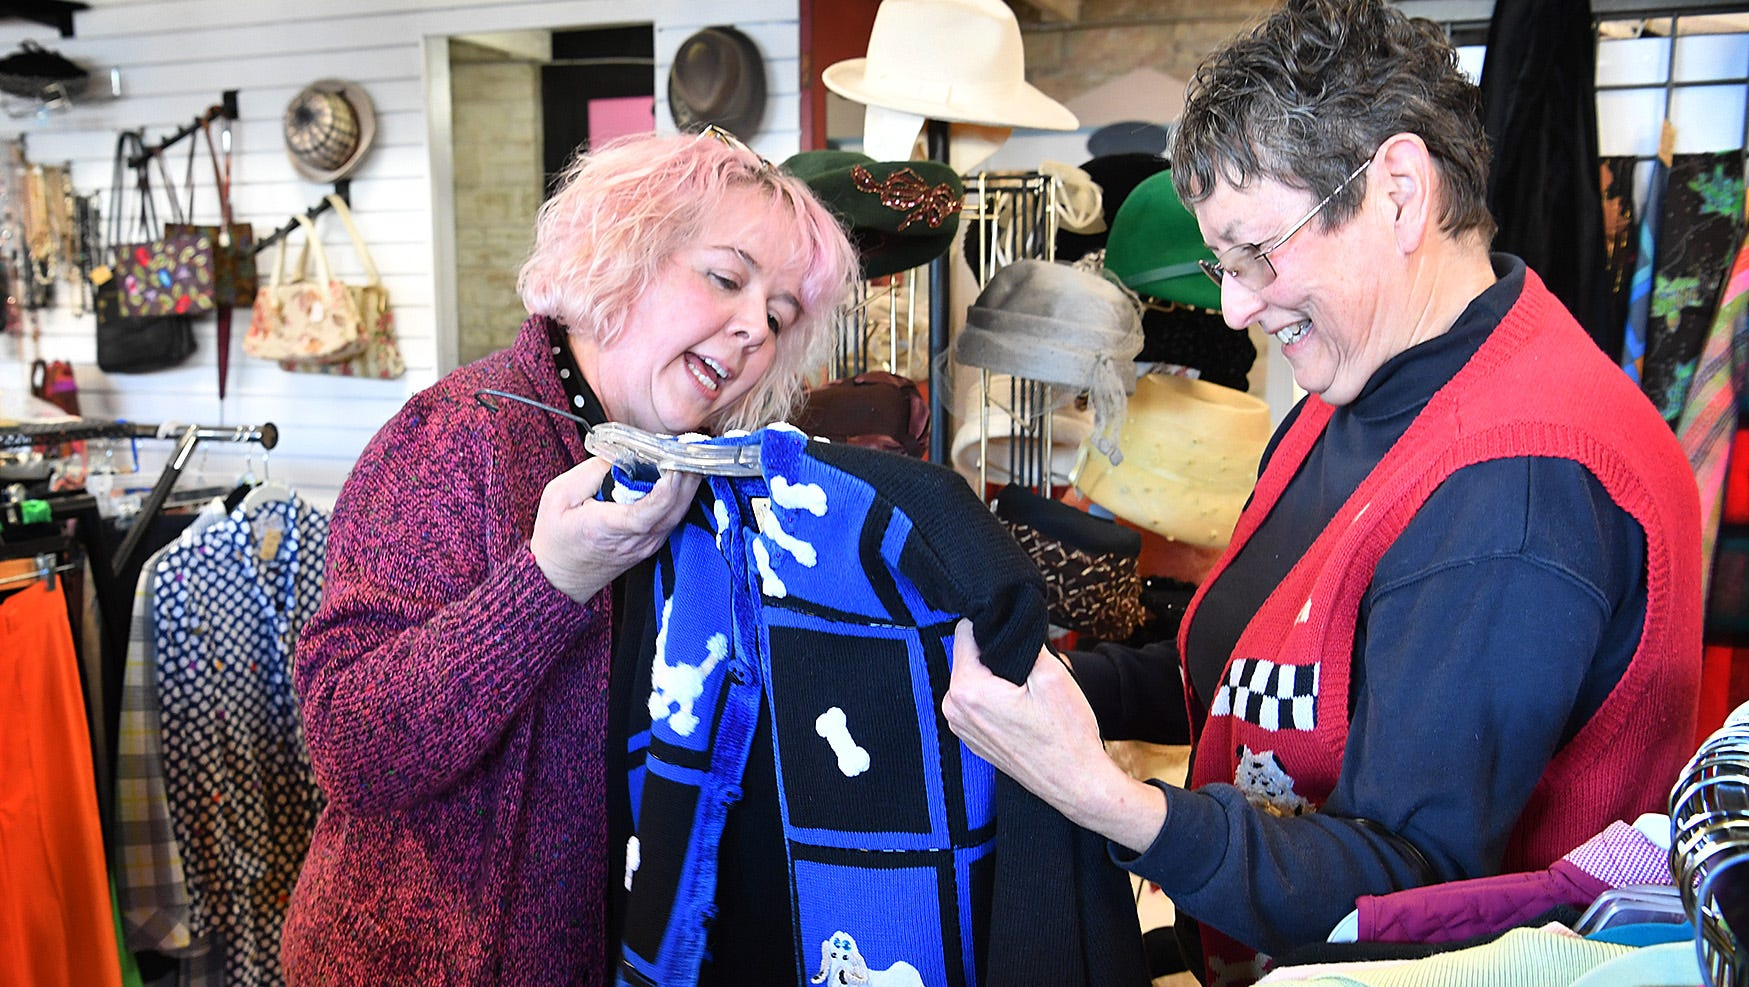 Janet Ehling, left, of Fashion Garage, works with customer Joann Spivey at the new vintage clothing boutique on Lamar.